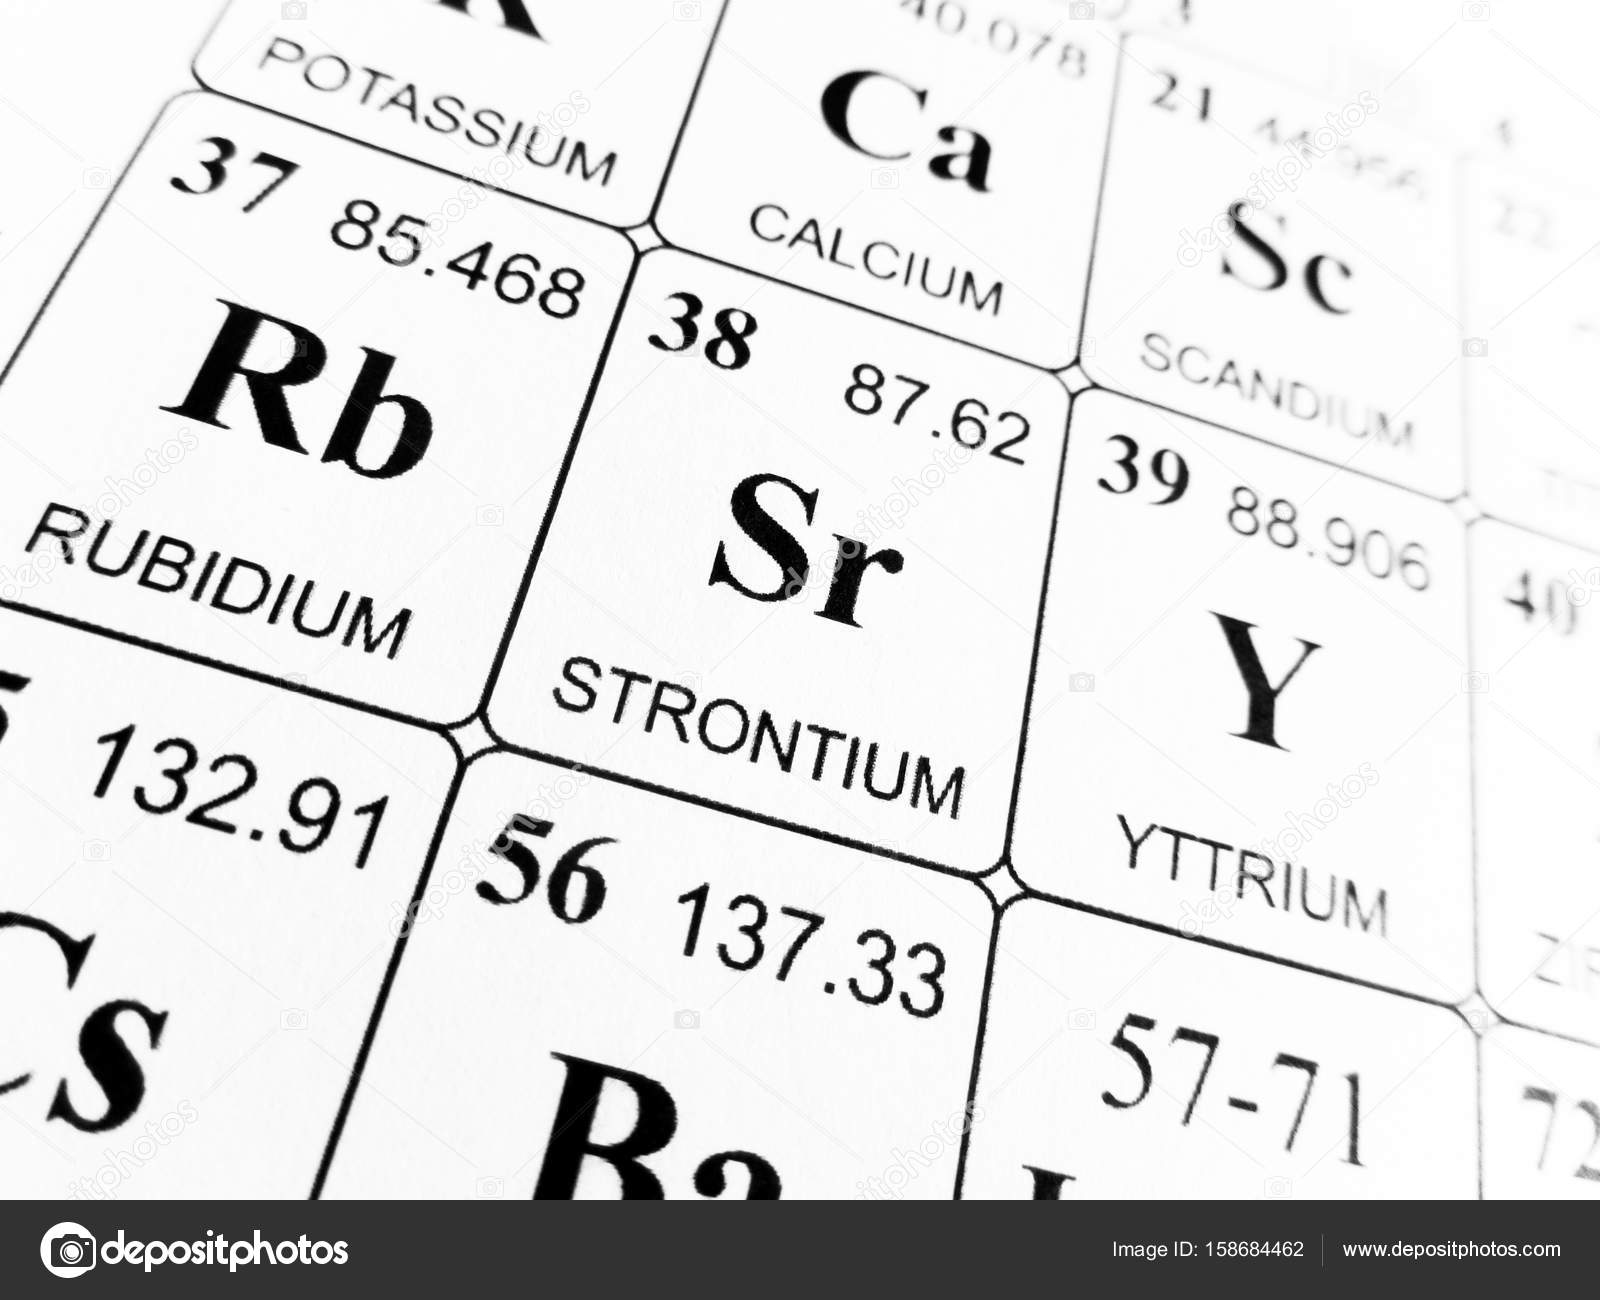 Strontium on the periodic table of the elements Stock